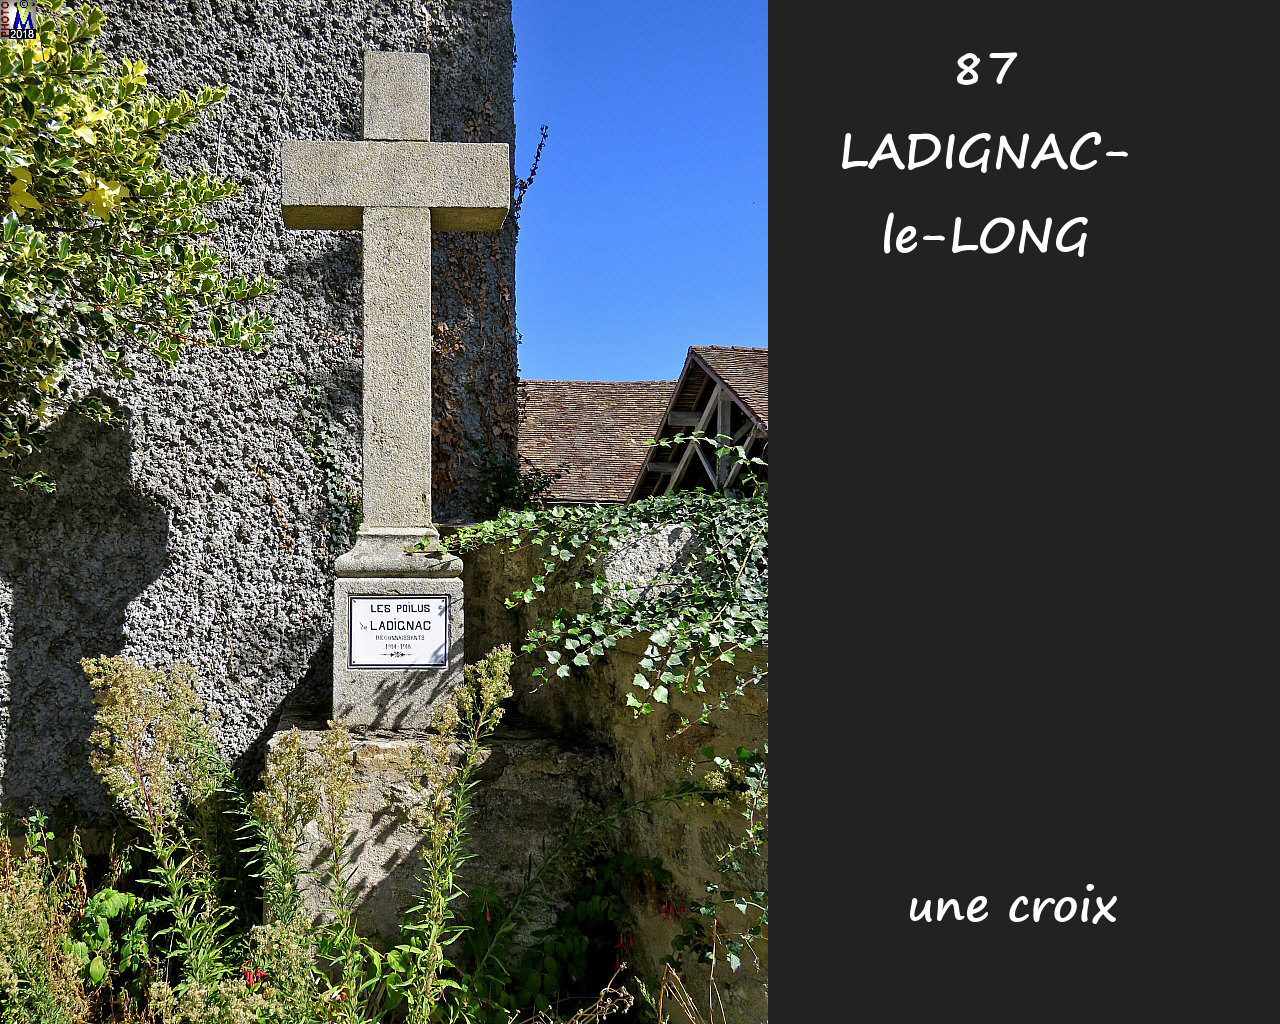 87LADIGNAC-LONG_croix_120.jpg